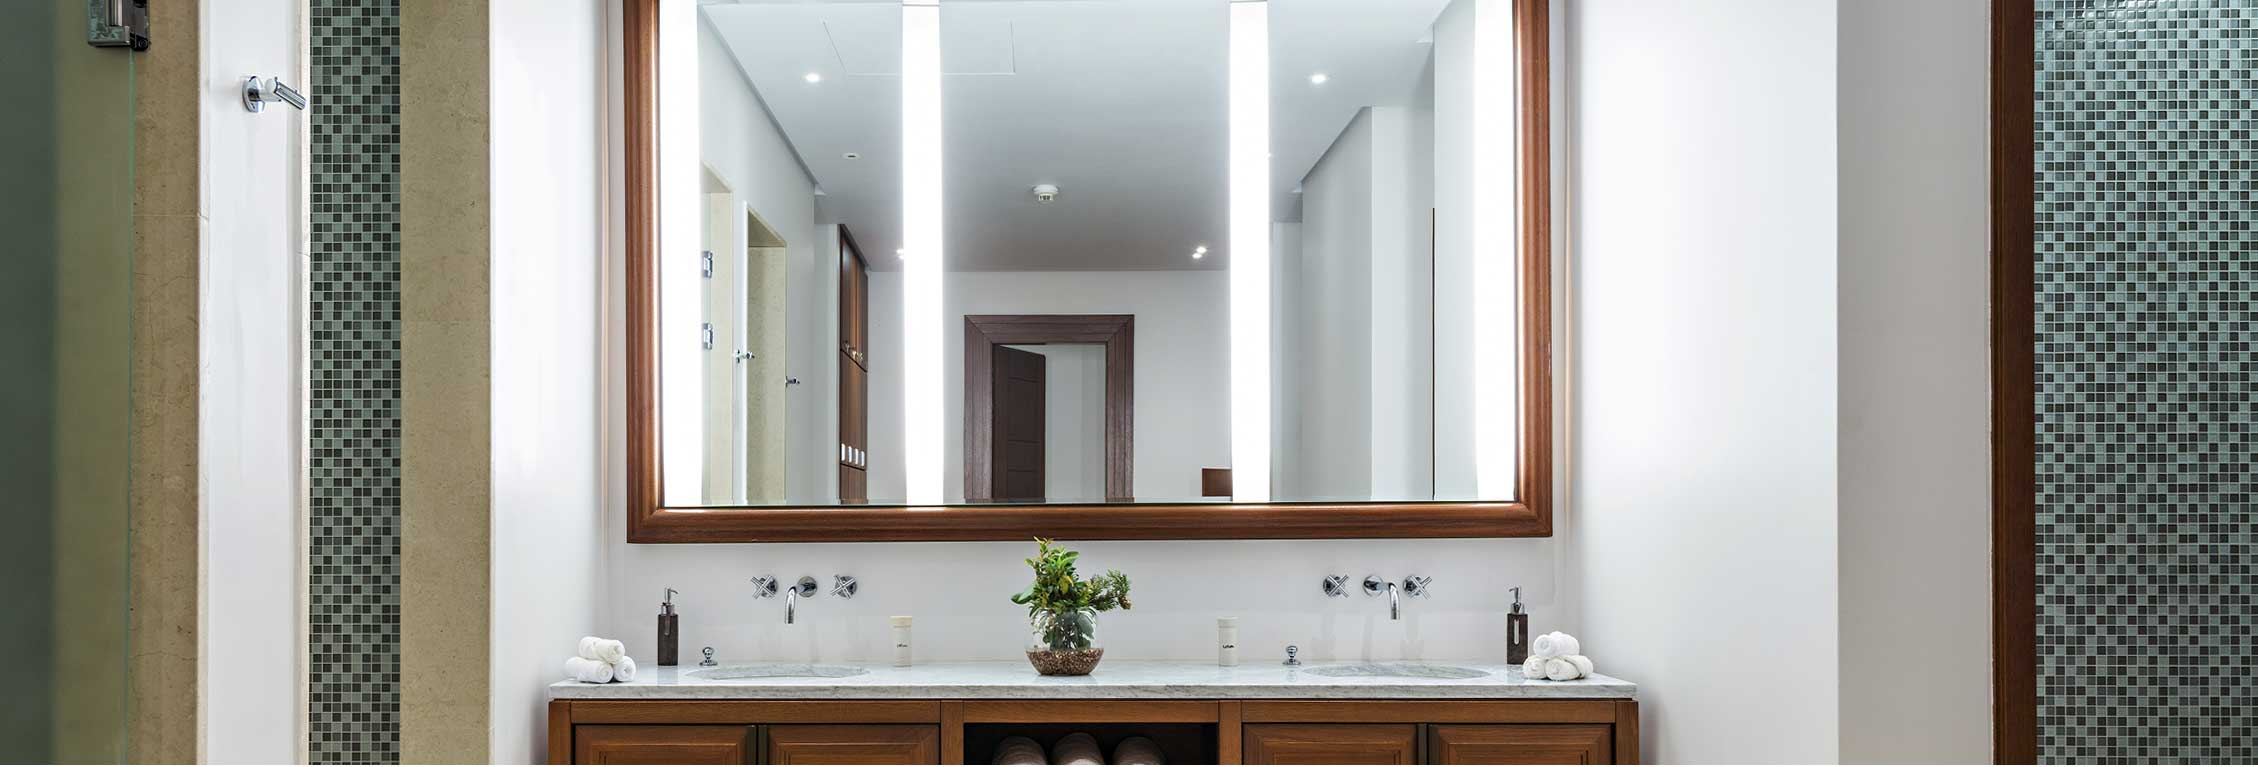 How To Install Mirrors The Right Way